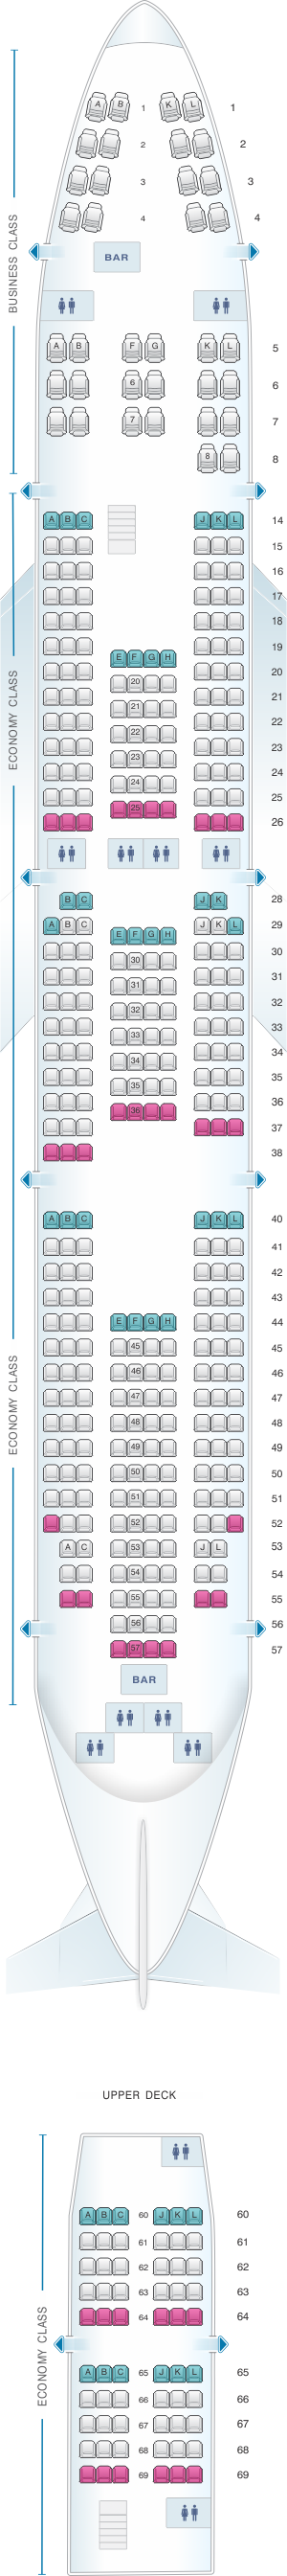 Seat map for Air France Boeing B747 400